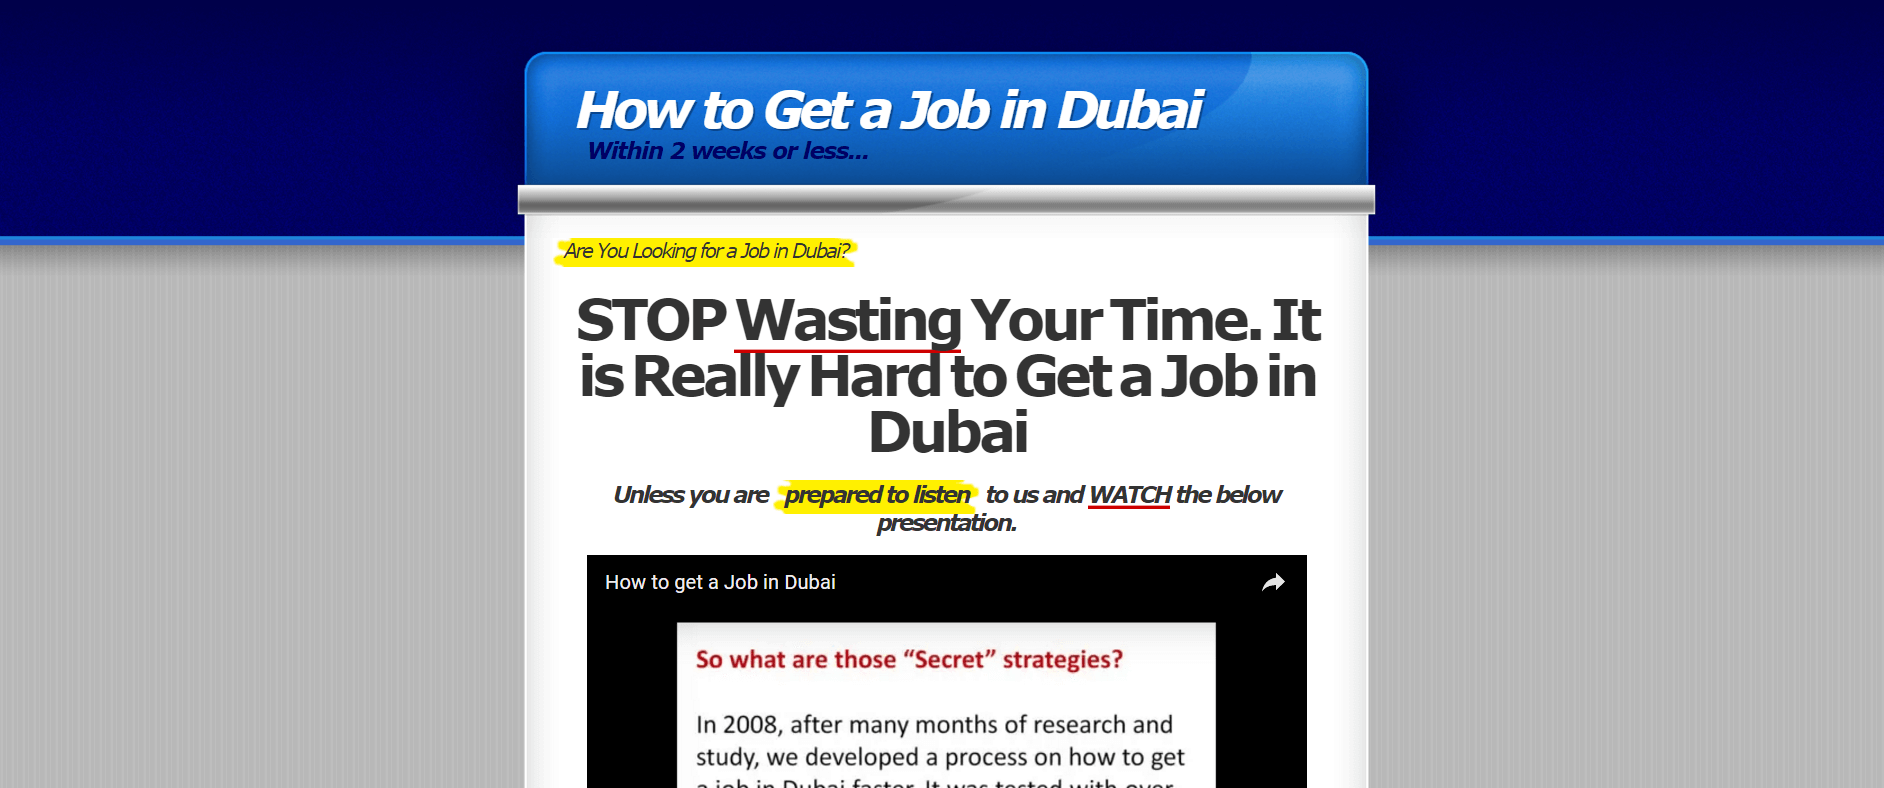 The eBook is chock full of tips, tricks and even a resume building guide to help you out in Dubai!